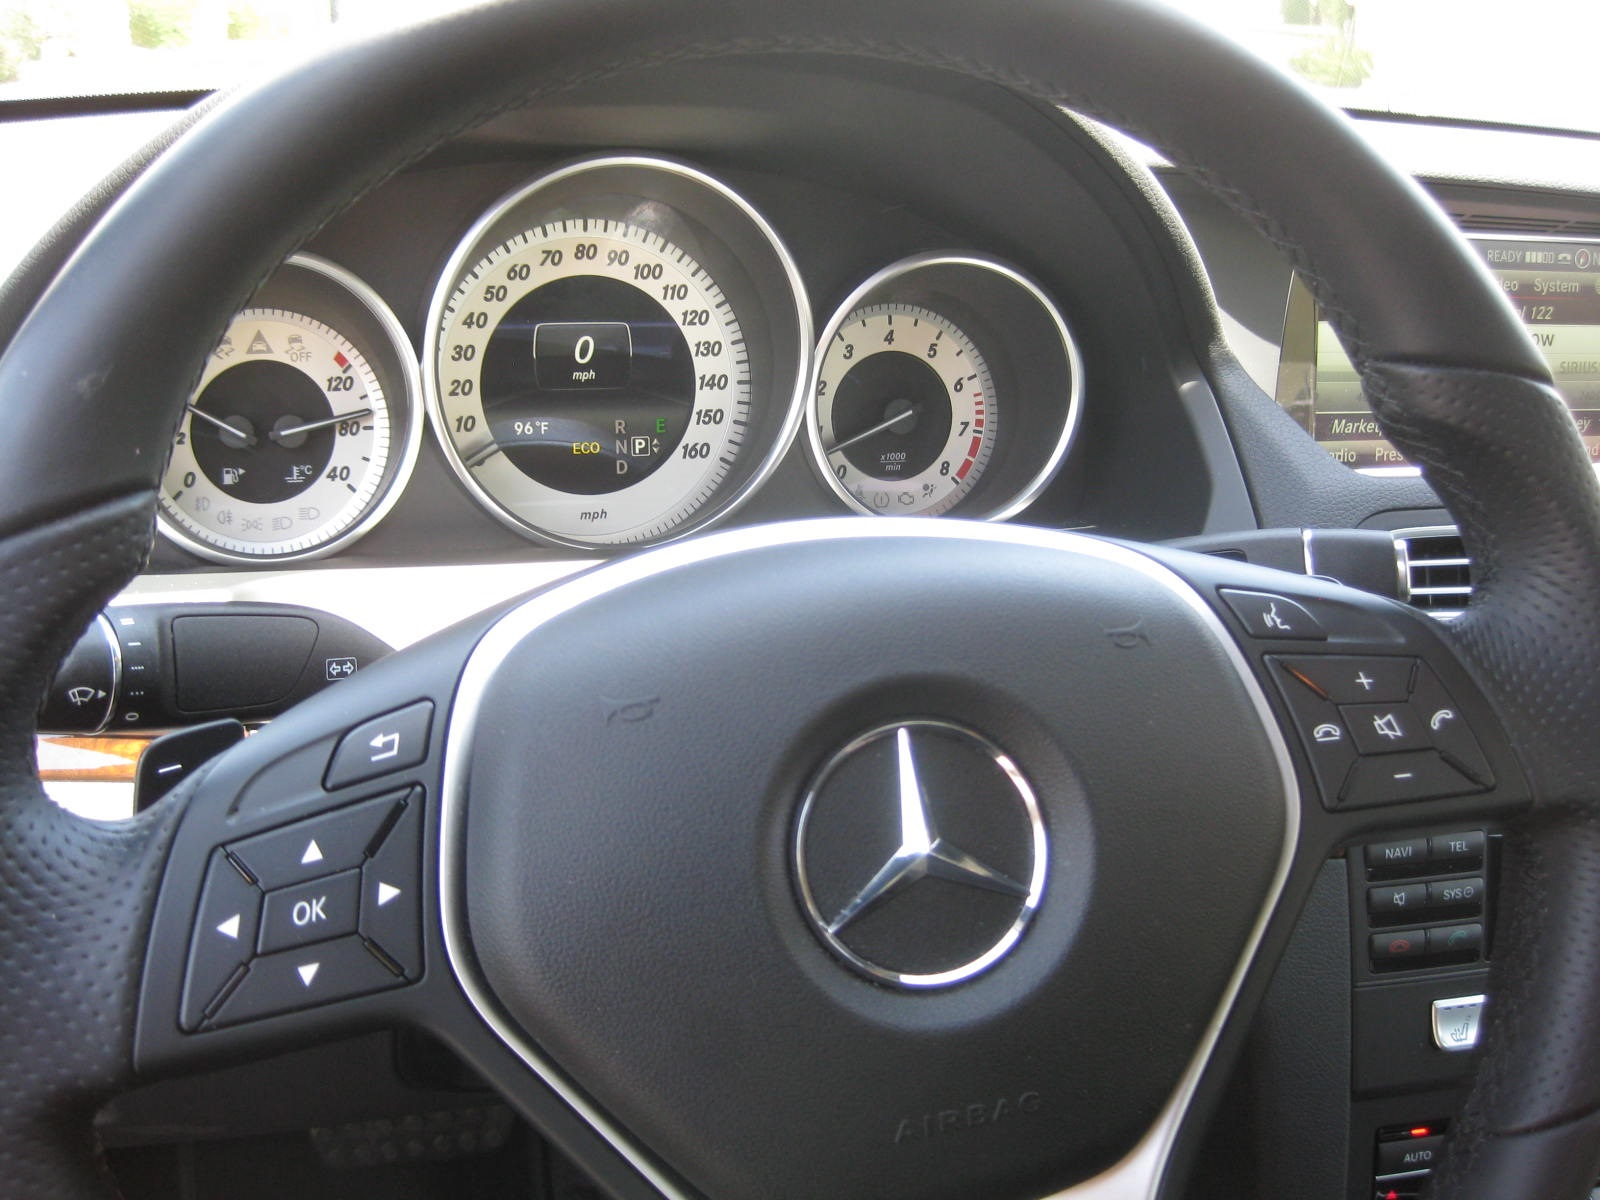 Personal Luxury Pillarless Style The 2014 Mercedes Benz E350 Coupe Todd Bianco S